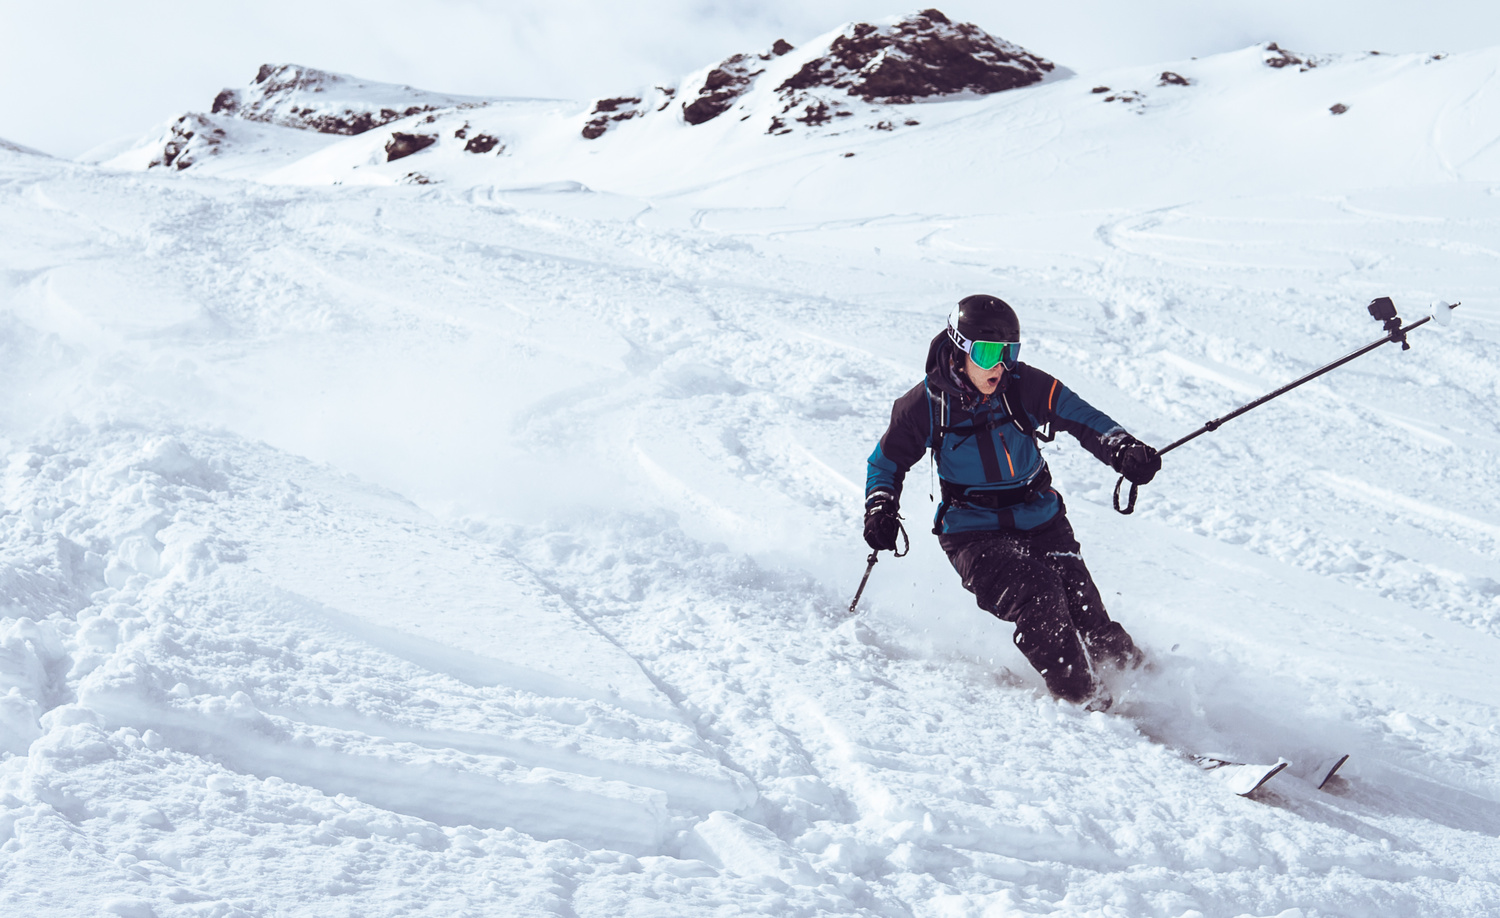 Skiing action by Oliver Rykatkin